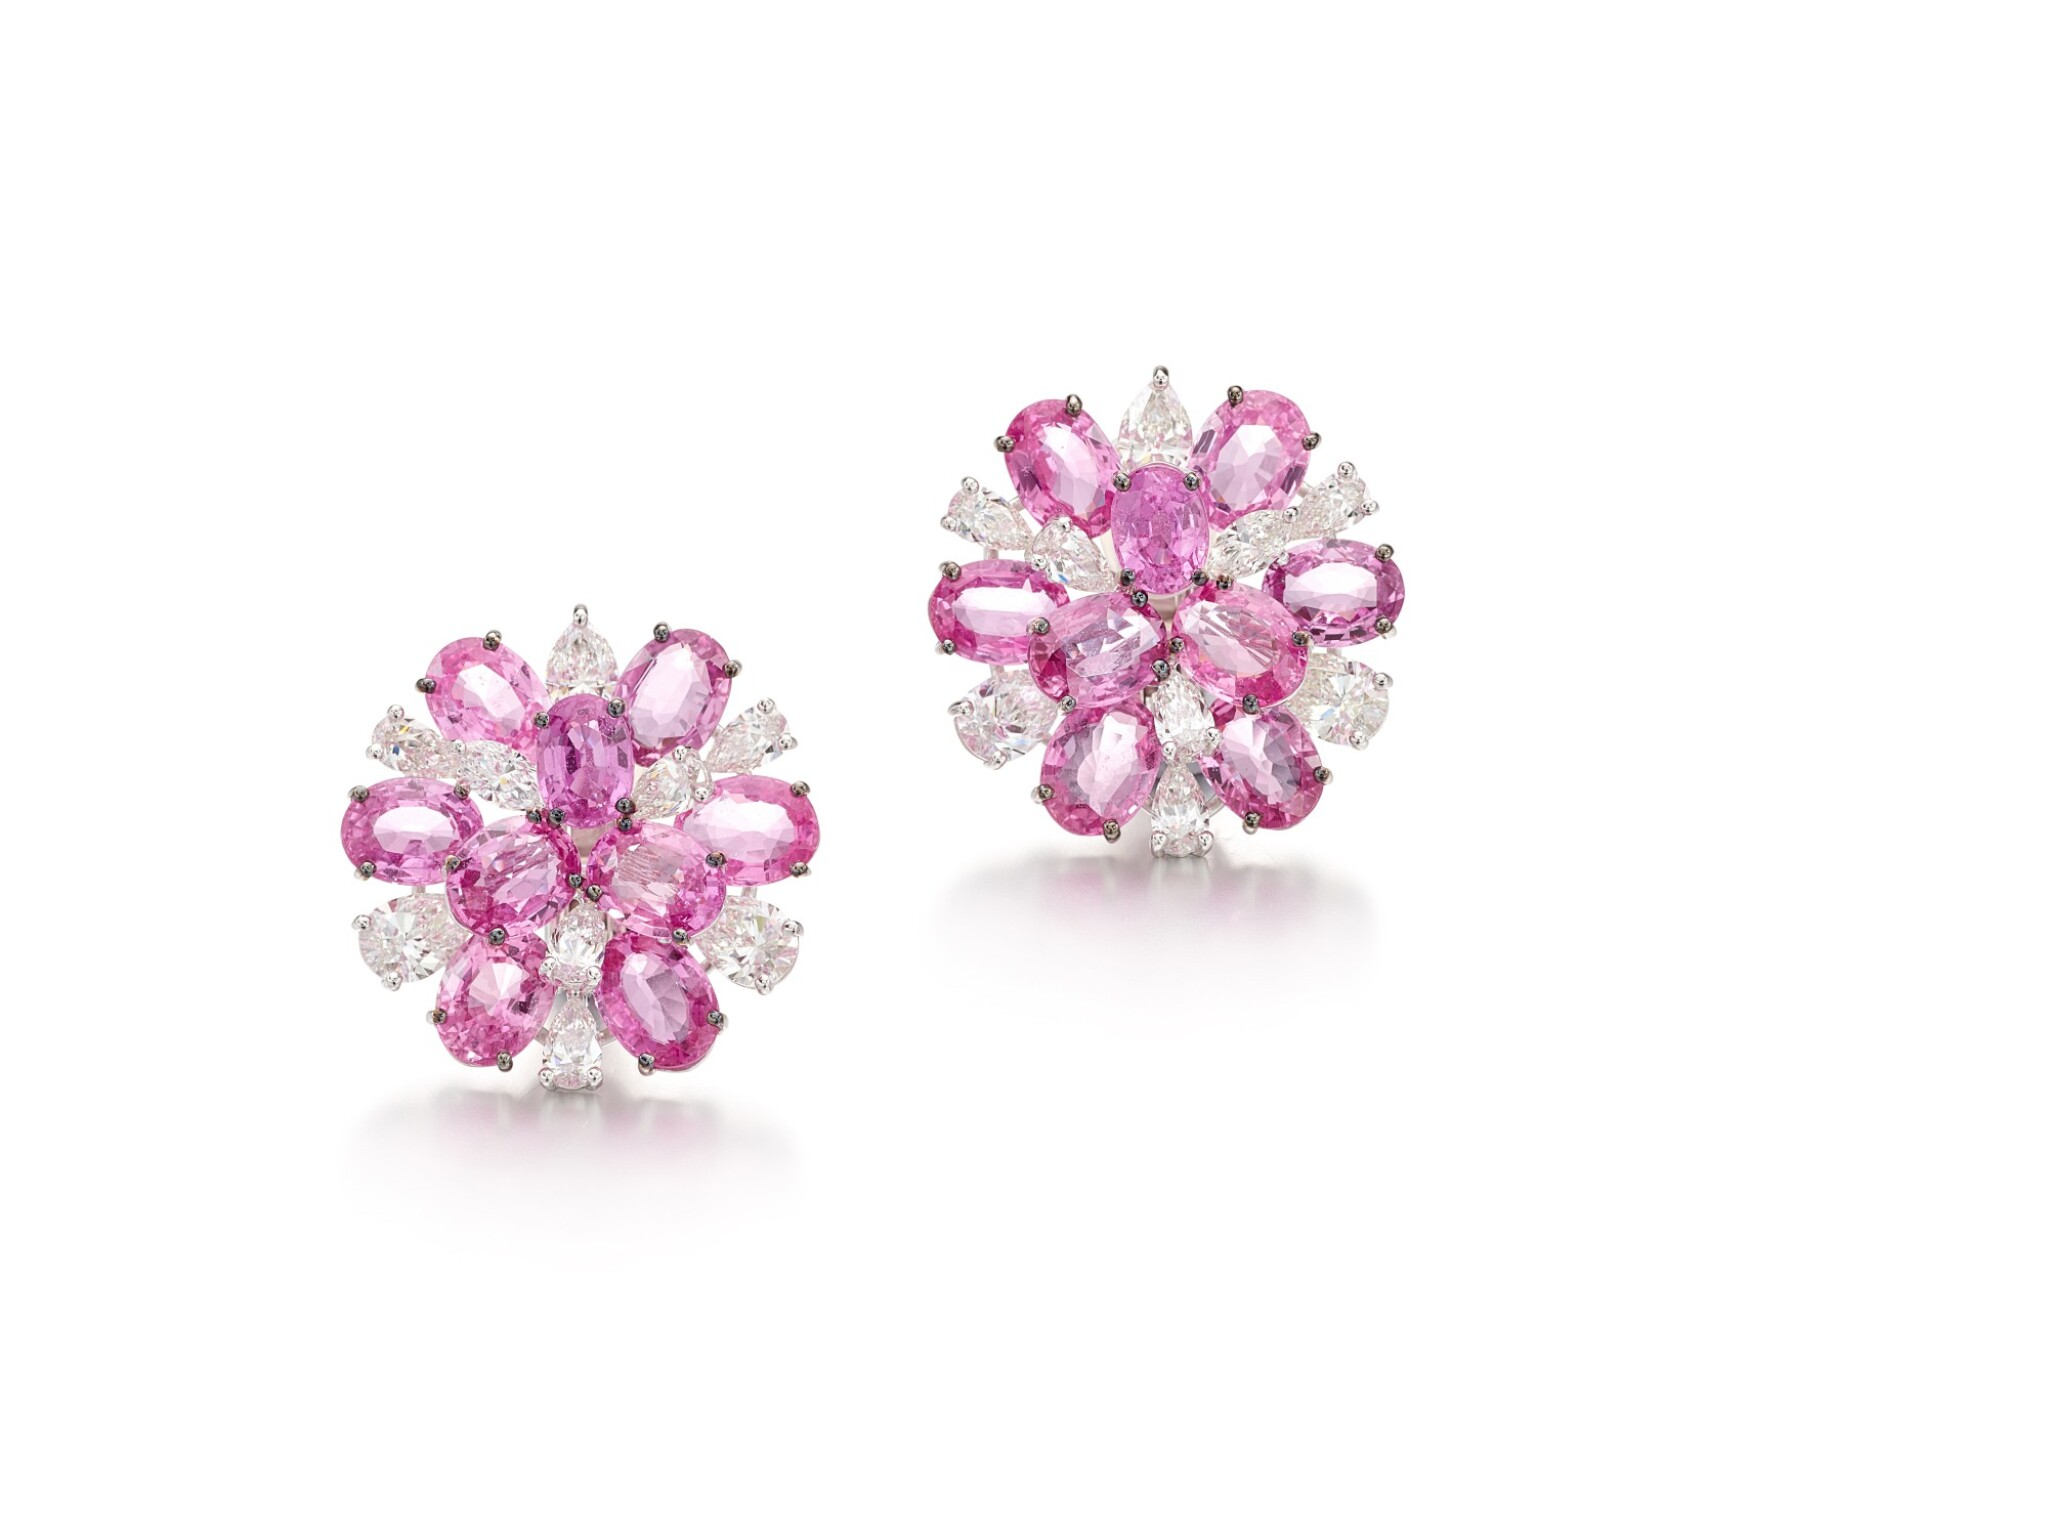 View full screen - View 1 of Lot 1700. Pair of Pink Sapphire and Diamond Earrings | 格拉夫 | 粉紅剛玉 配 鑽石 耳環一對.